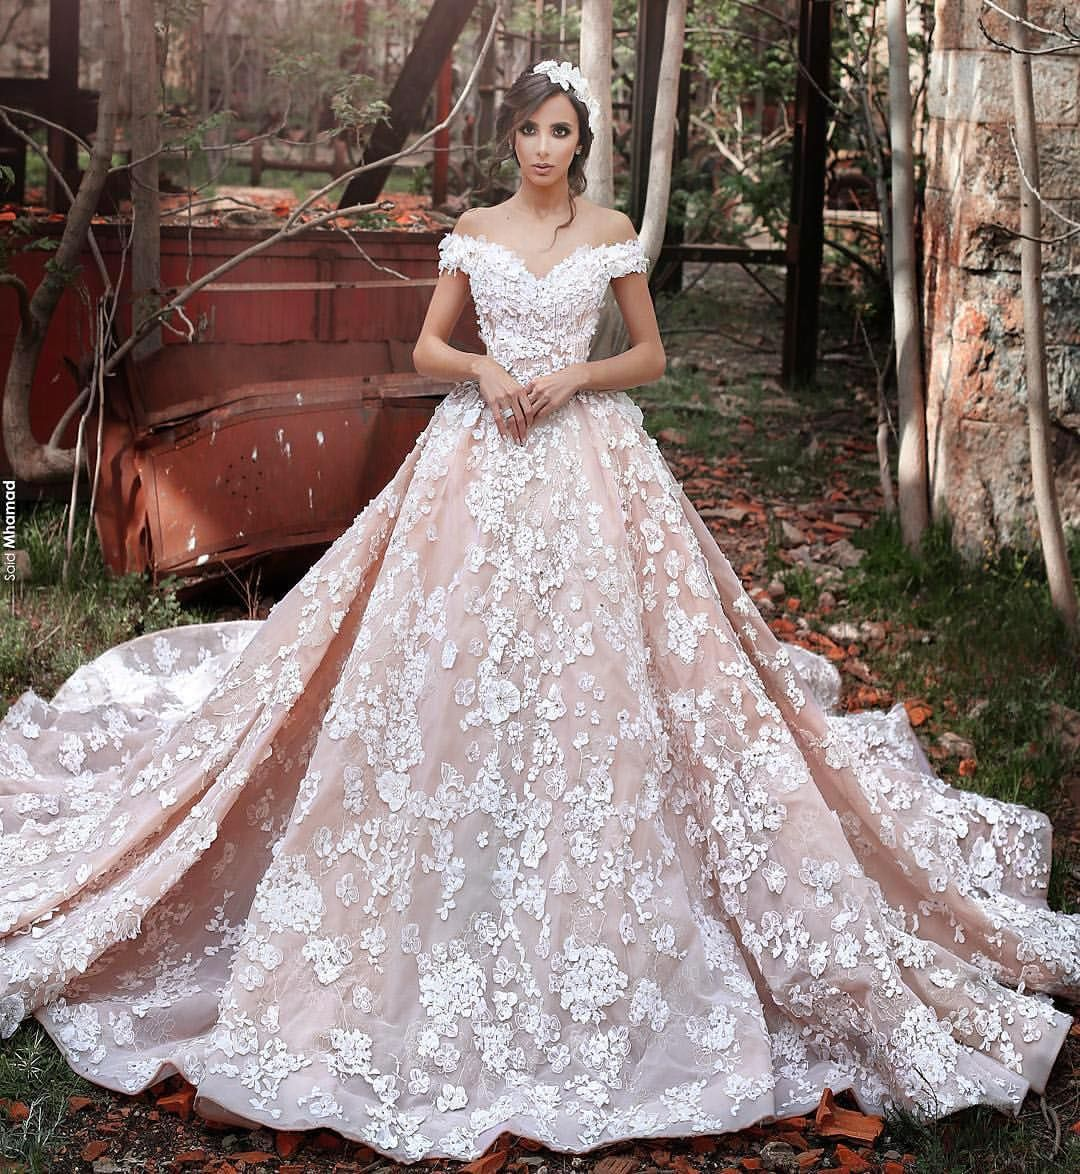 Wedluxeofftheshoulder gowns are one of the biggest bridal trends